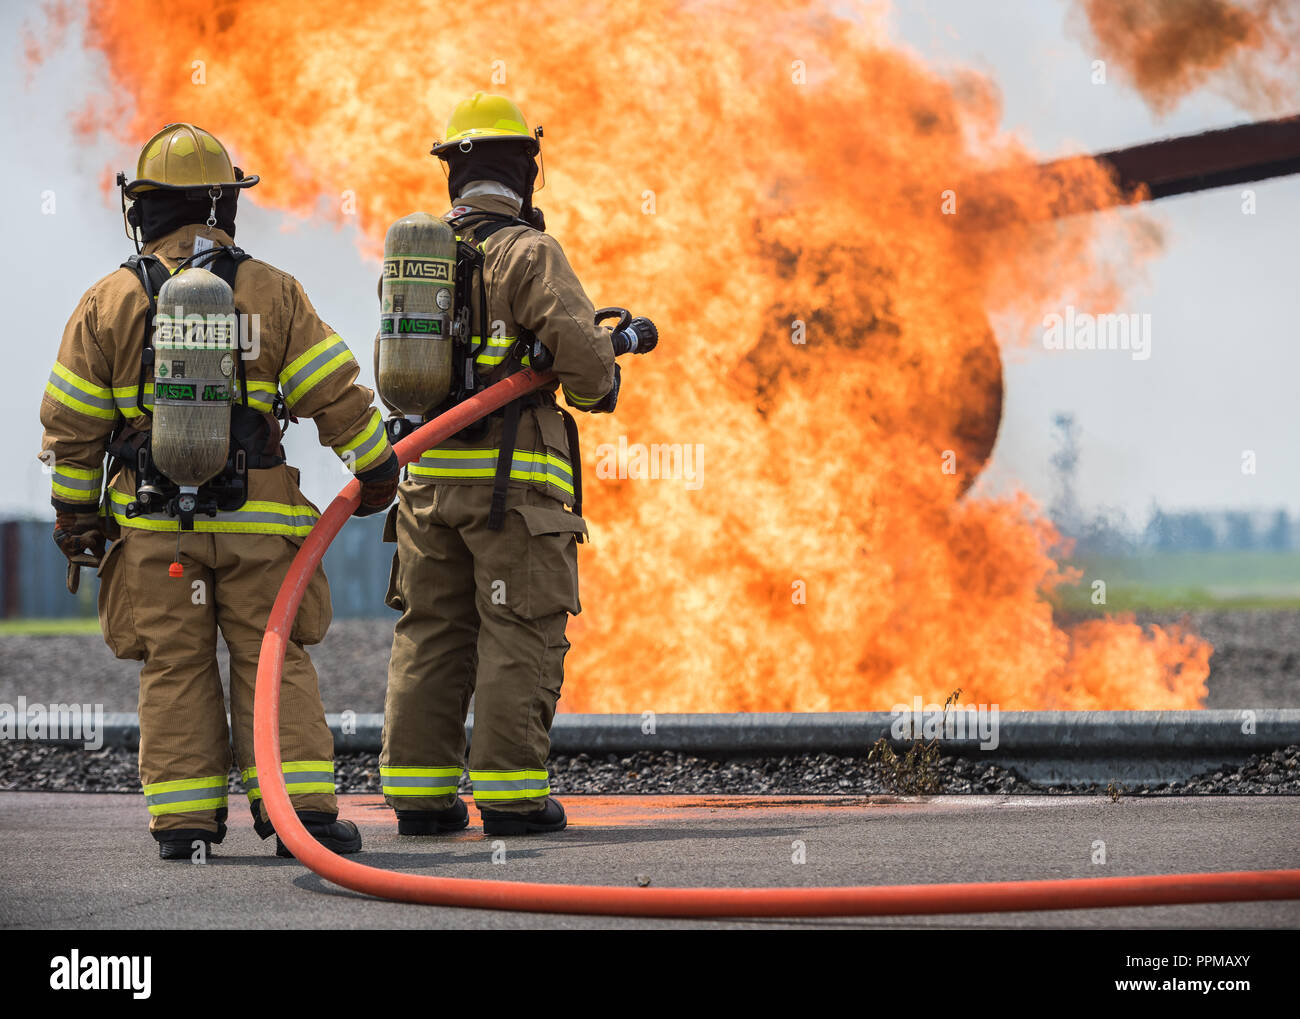 Yokota Air Base and Marine Corps Air Station Iwakuni firefighters prepare to battle a fire during a joint fire training, at YAB, July 17, 2018. During the two day live fire training, Air Force and Marines got an opportunity to enhance firefighting skills during simulated aircraft and structural burns and flash over scenarios. (U.S. Air Force photo by Airman 1st Class Gabrielle Spalding) - Stock Image